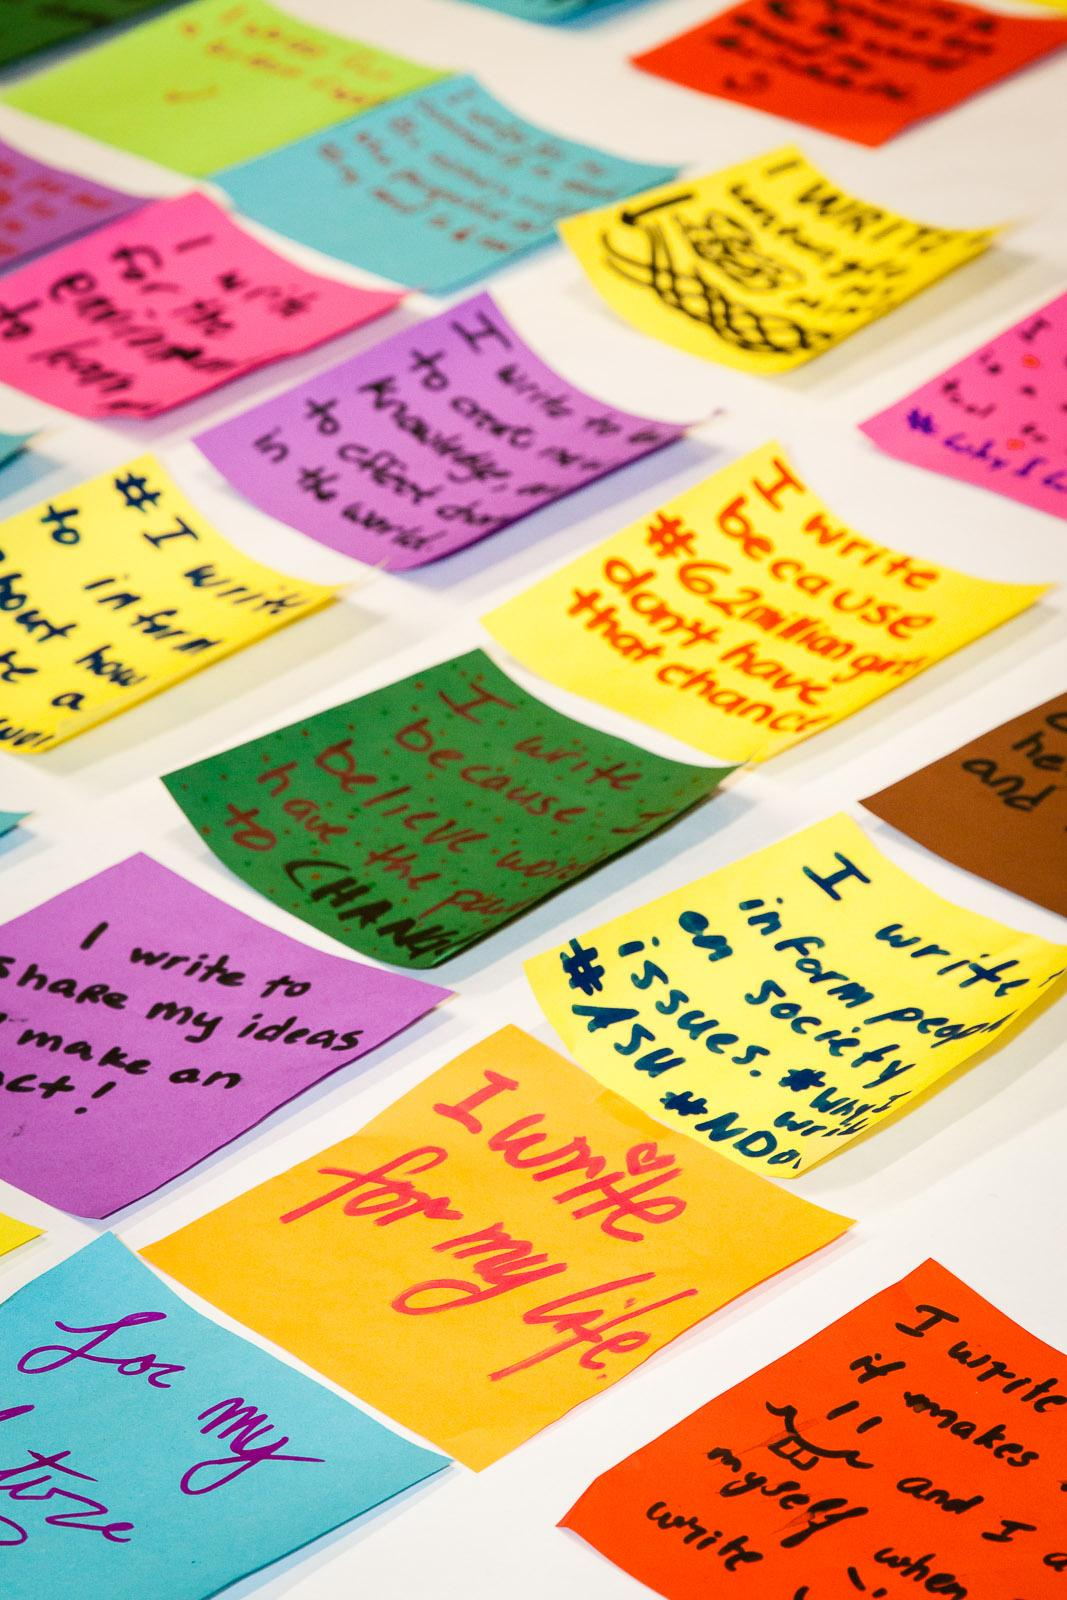 """Image: Participants in ASU's celebration of the 2015 National Day on Writing articulated their thoughts on """"Why I Write"""" on squares of origami paper, which were later assembled in a colorful """"quilt."""" / Photo by Bruce Matsunaga."""